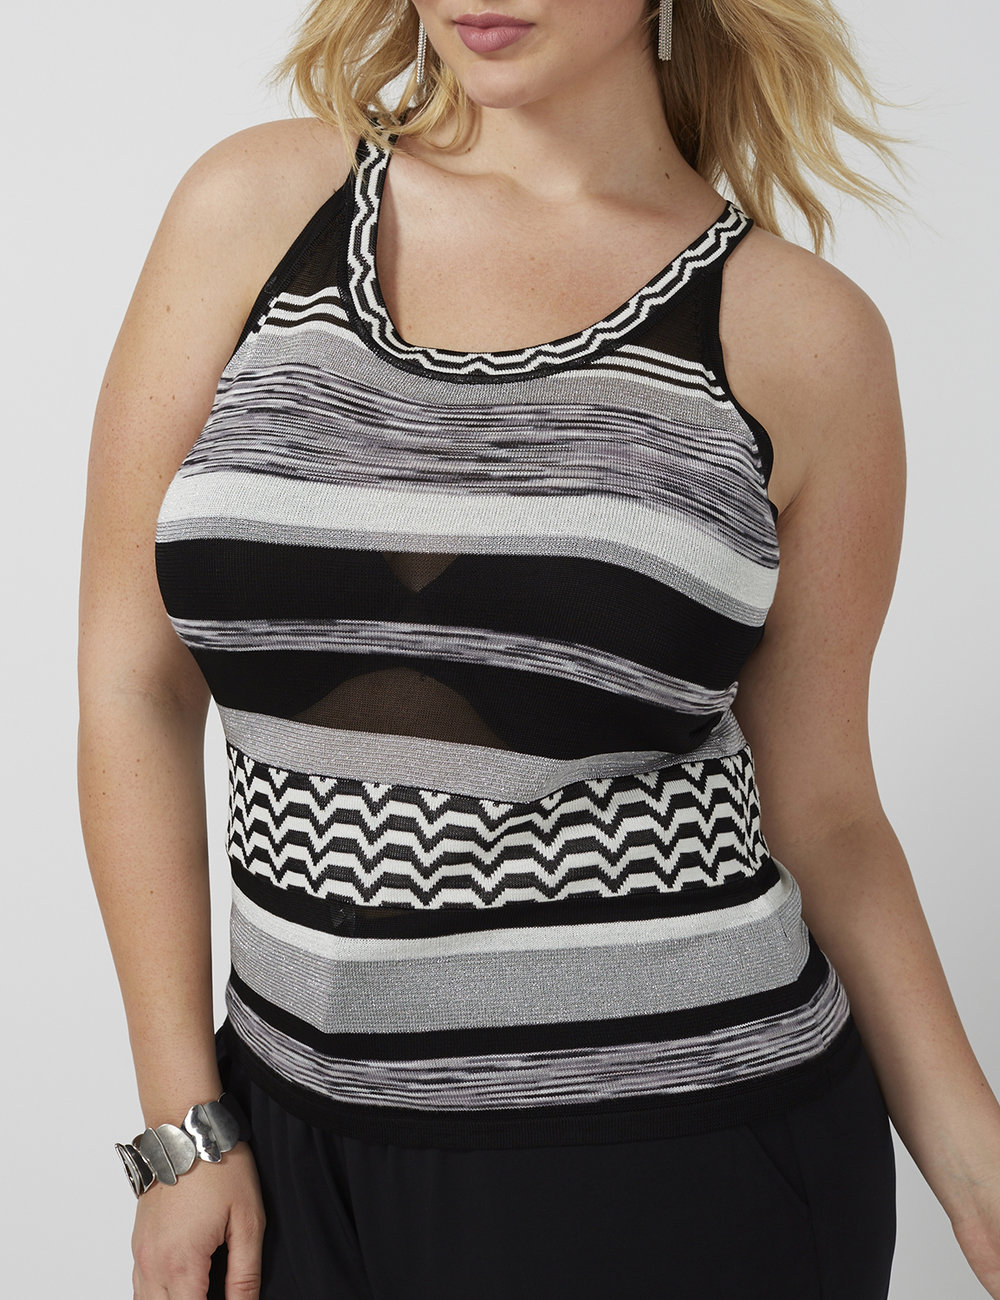 blonde fashion model wearing black and gray striped tank top